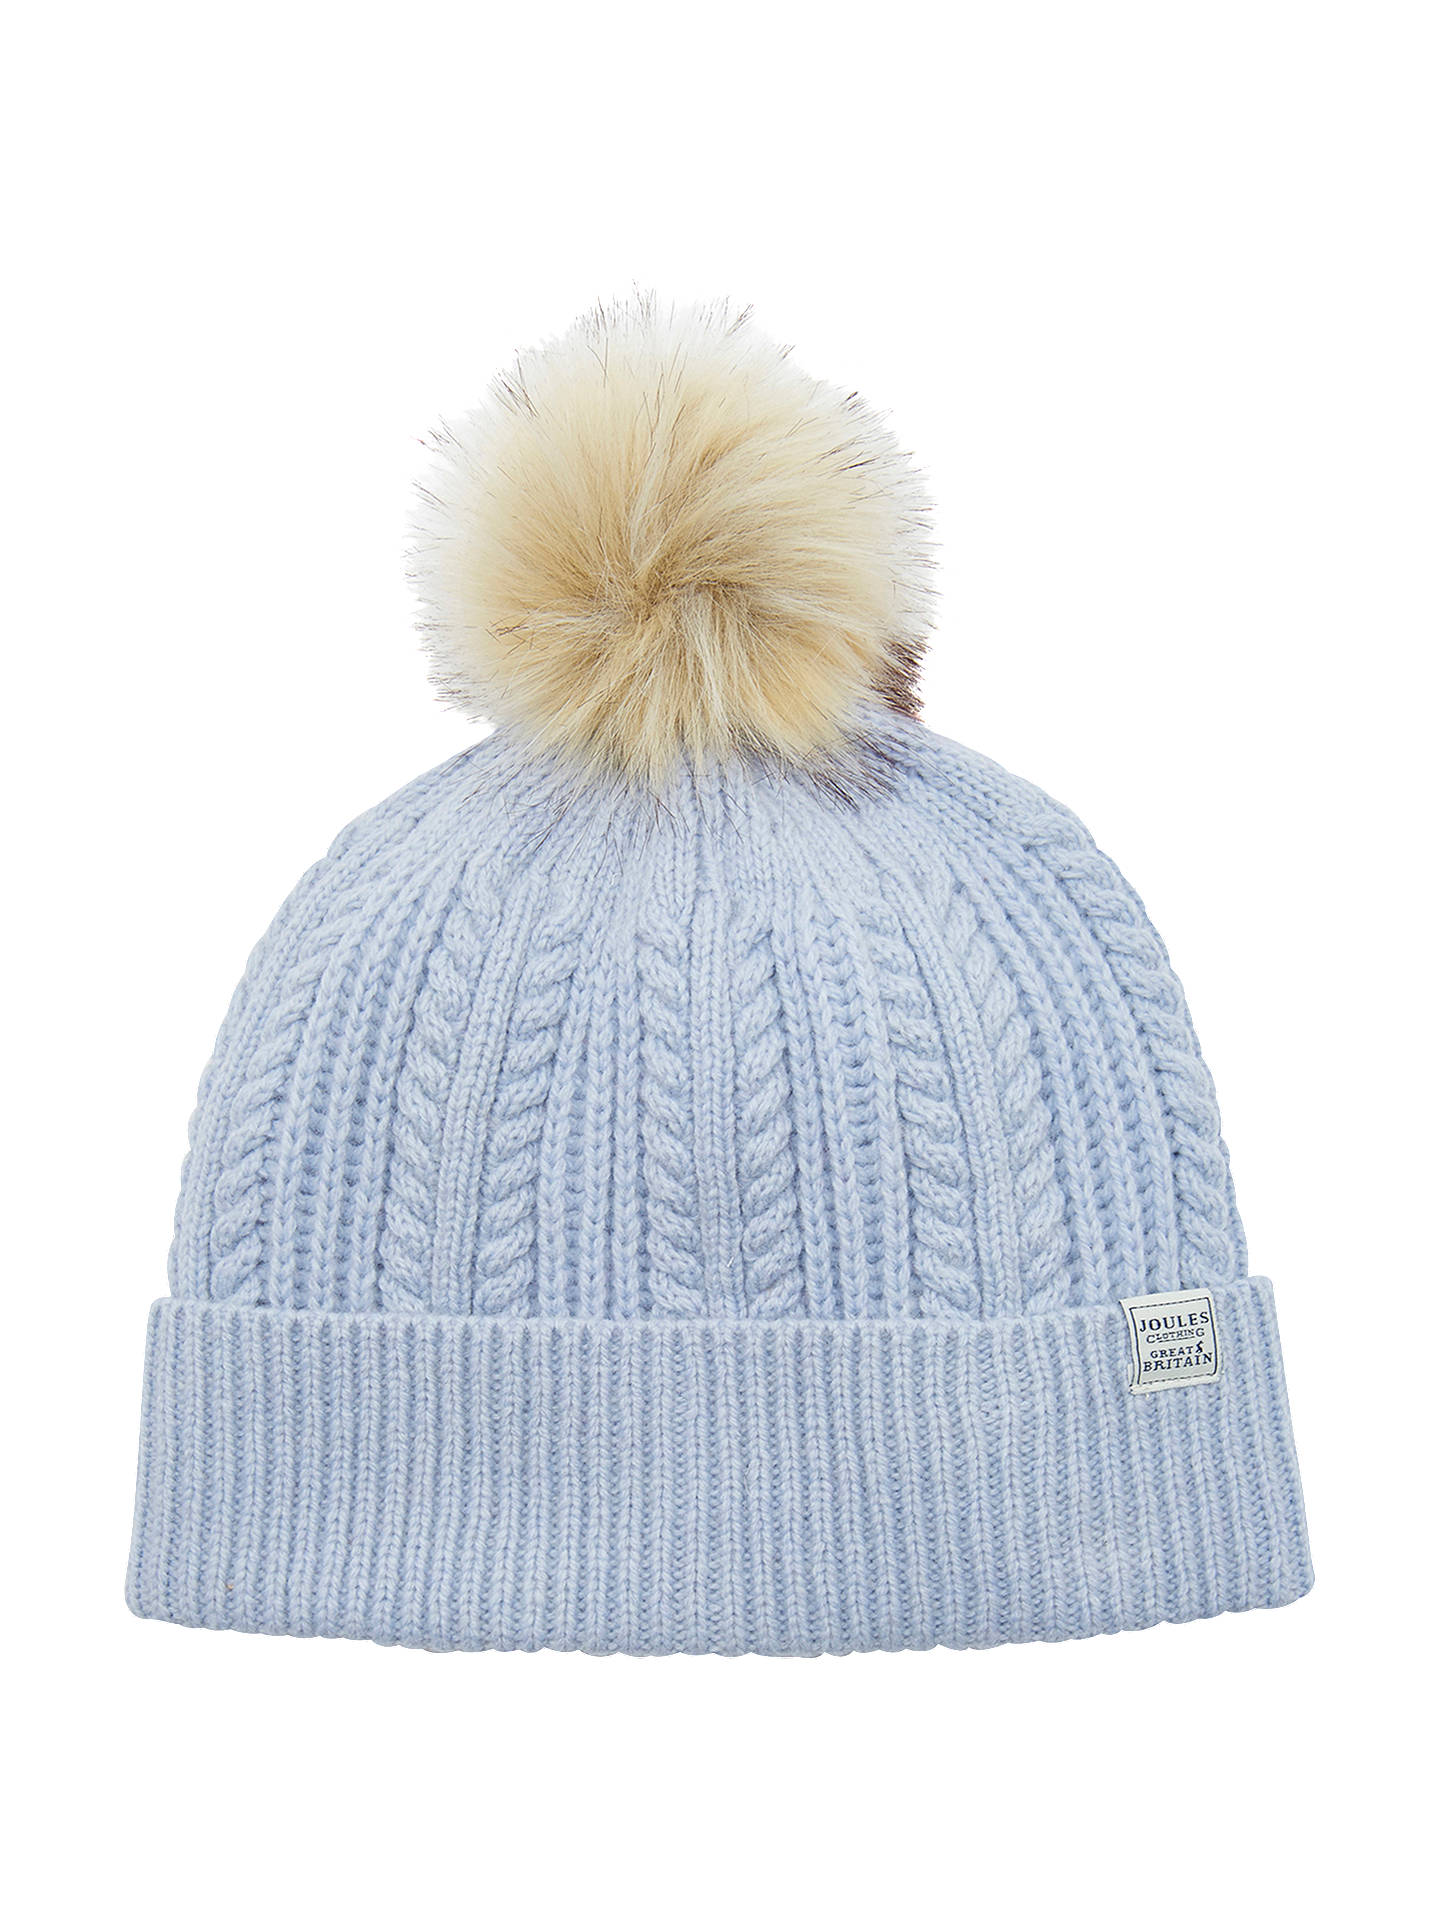 bf978ad5b7453 Joules Bobble Lambswool Blend Bobble Hat at John Lewis   Partners